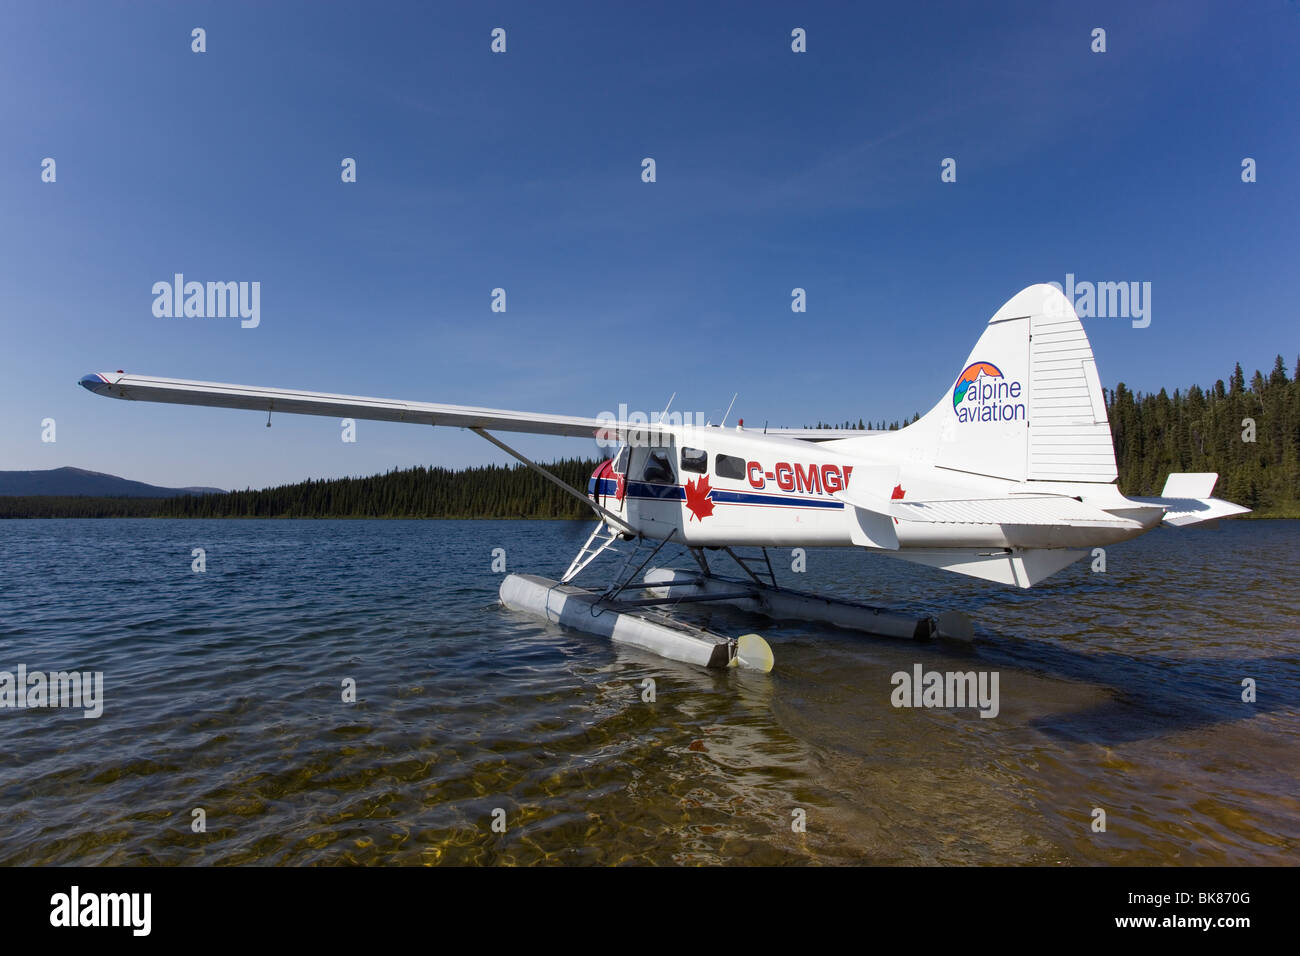 Taxiing, legendary de Havilland Canada DHC-2 Beaver, float plane, bush plane, Caribou Lakes, upper Liard River, - Stock Image